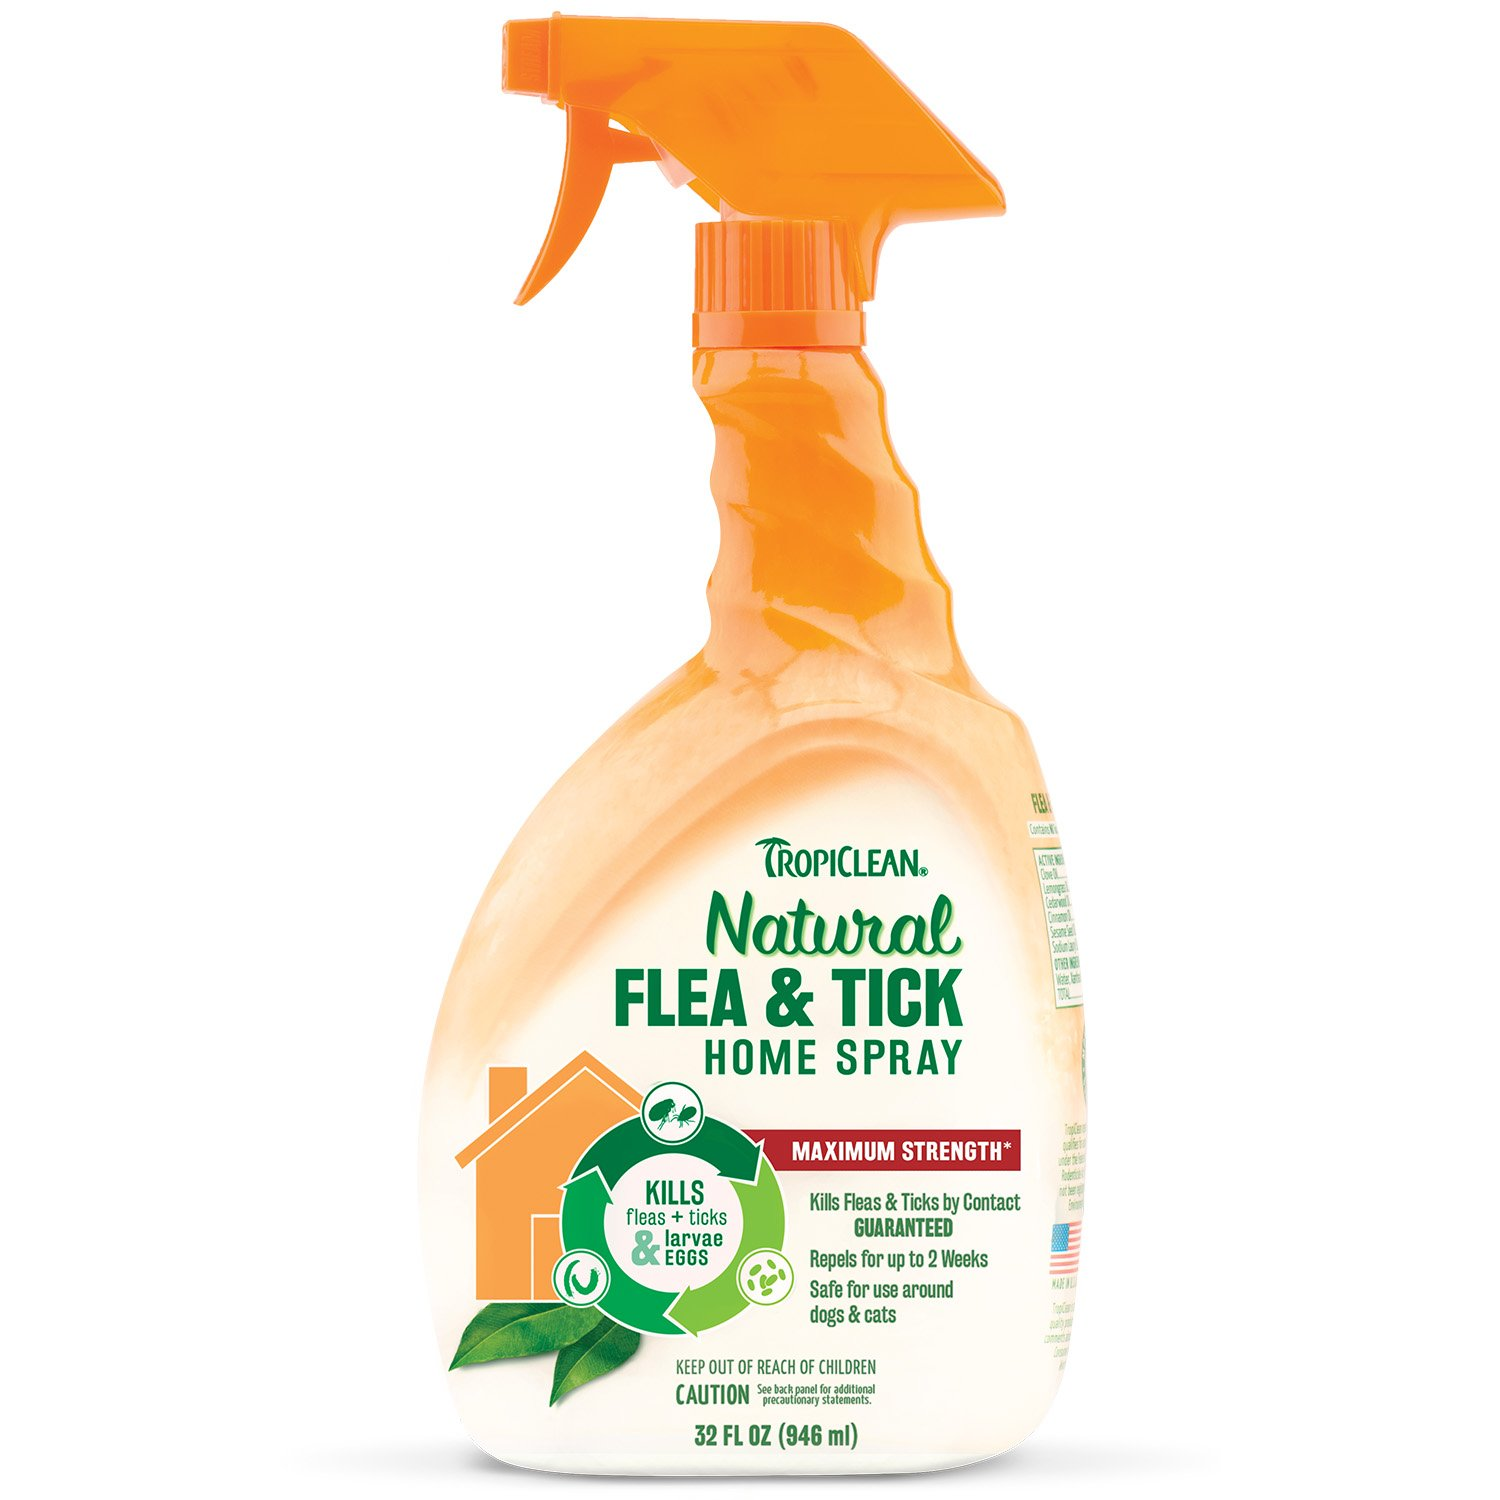 Tropiclean Natural Flea and Tick Spray For Home, Safe To Use Around Dogs and Cats, Effectively Kills And Repels Fleas and Ticks, Non-Staining, 32 oz.